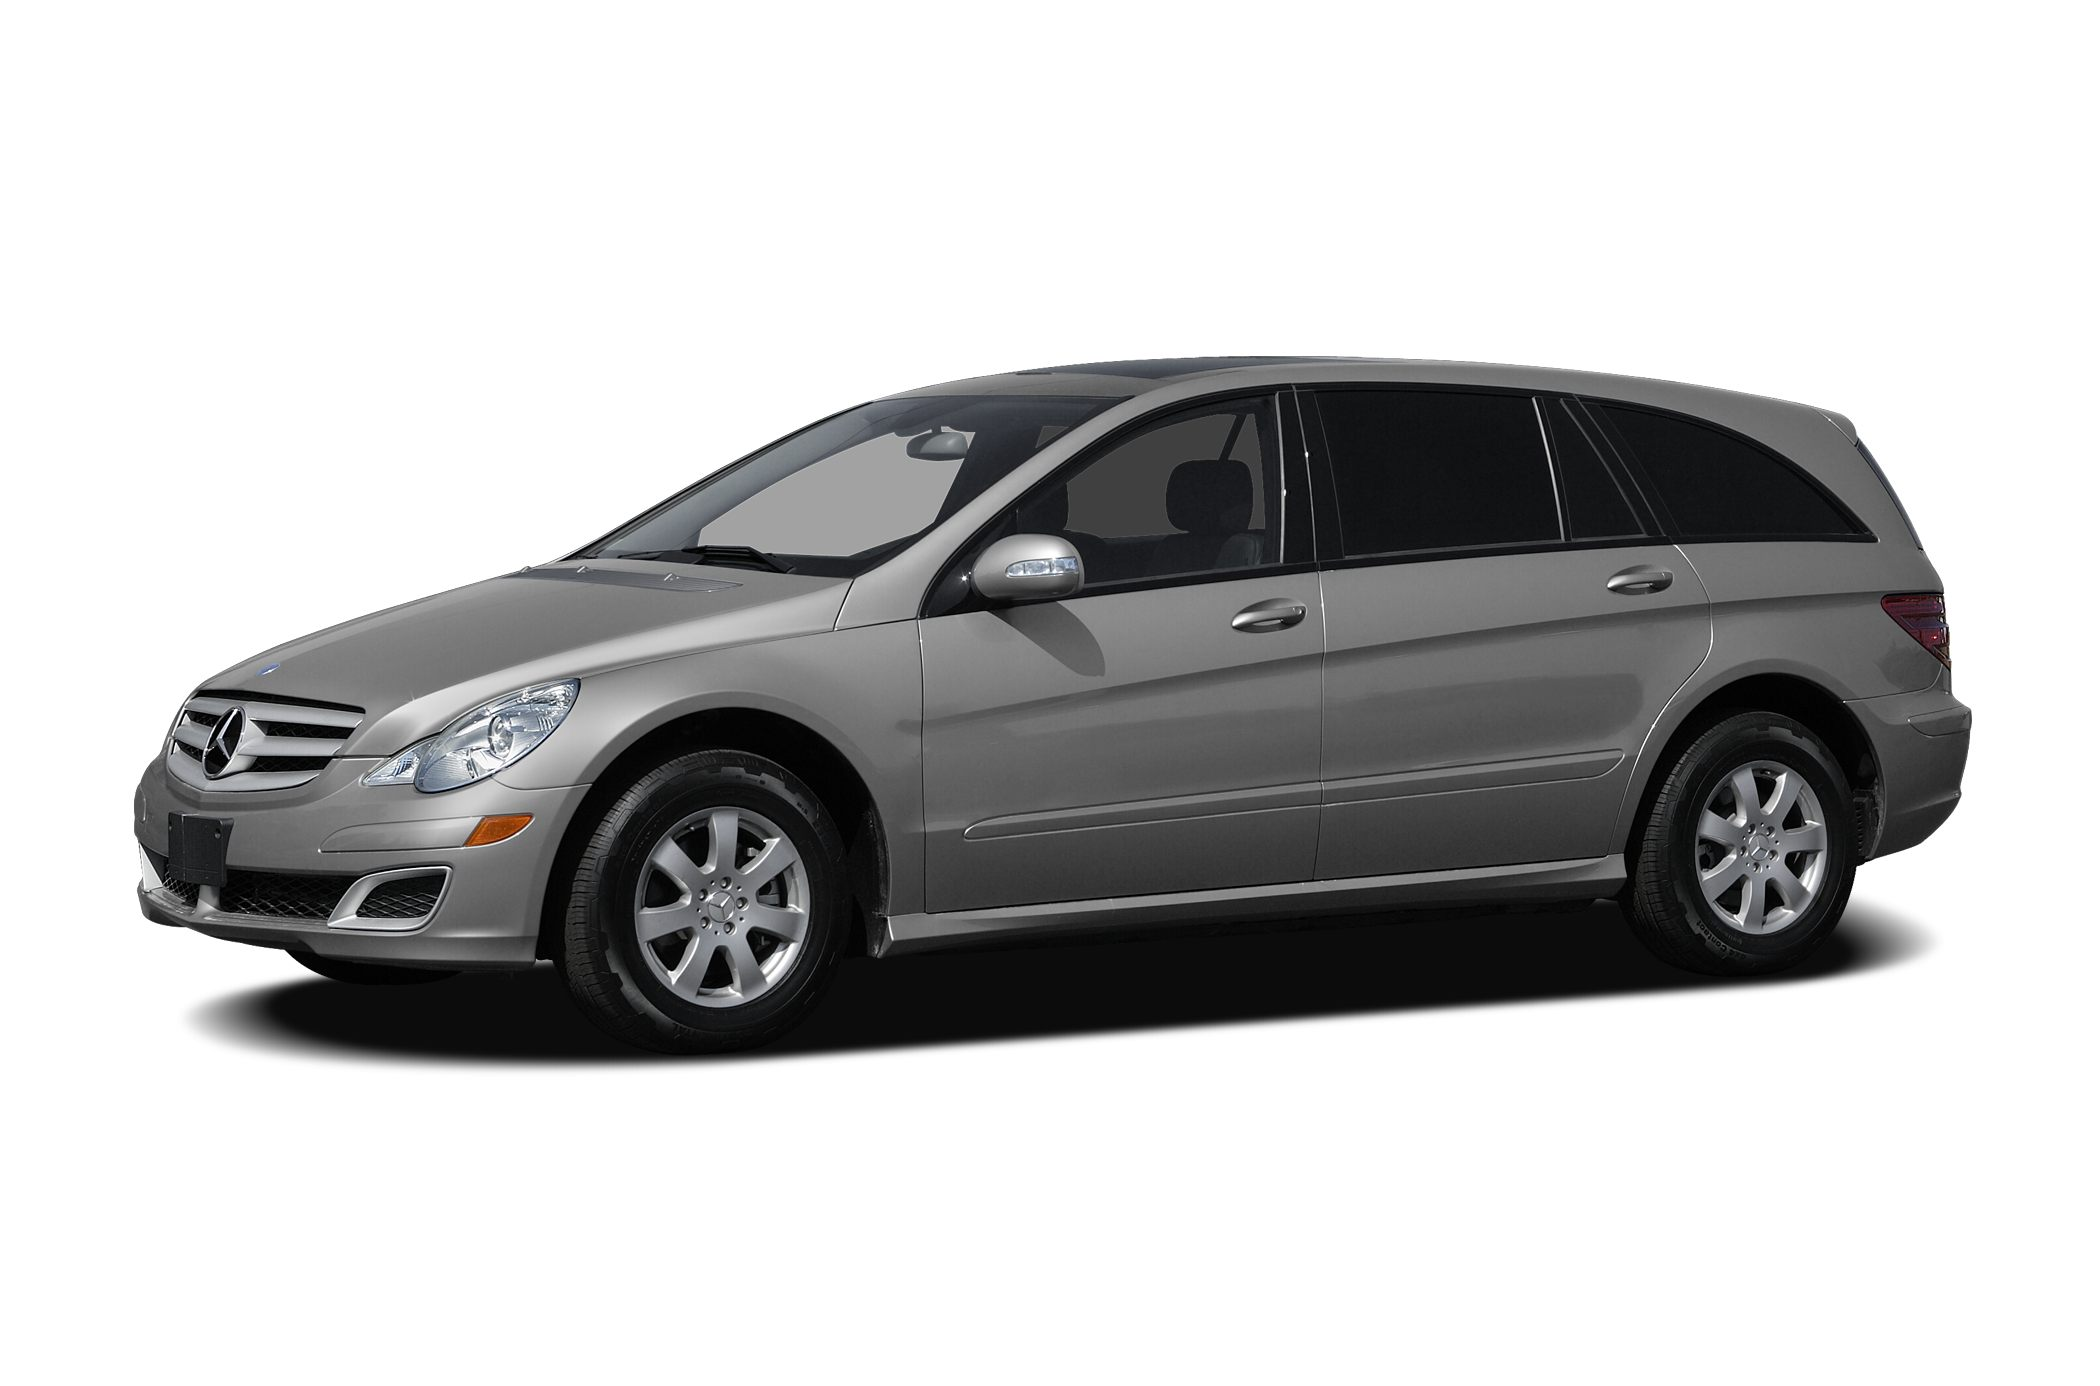 2007 Mercedes-Benz R-Class R350 4MATIC Wagon for sale in Addison for $12,000 with 85,838 miles.